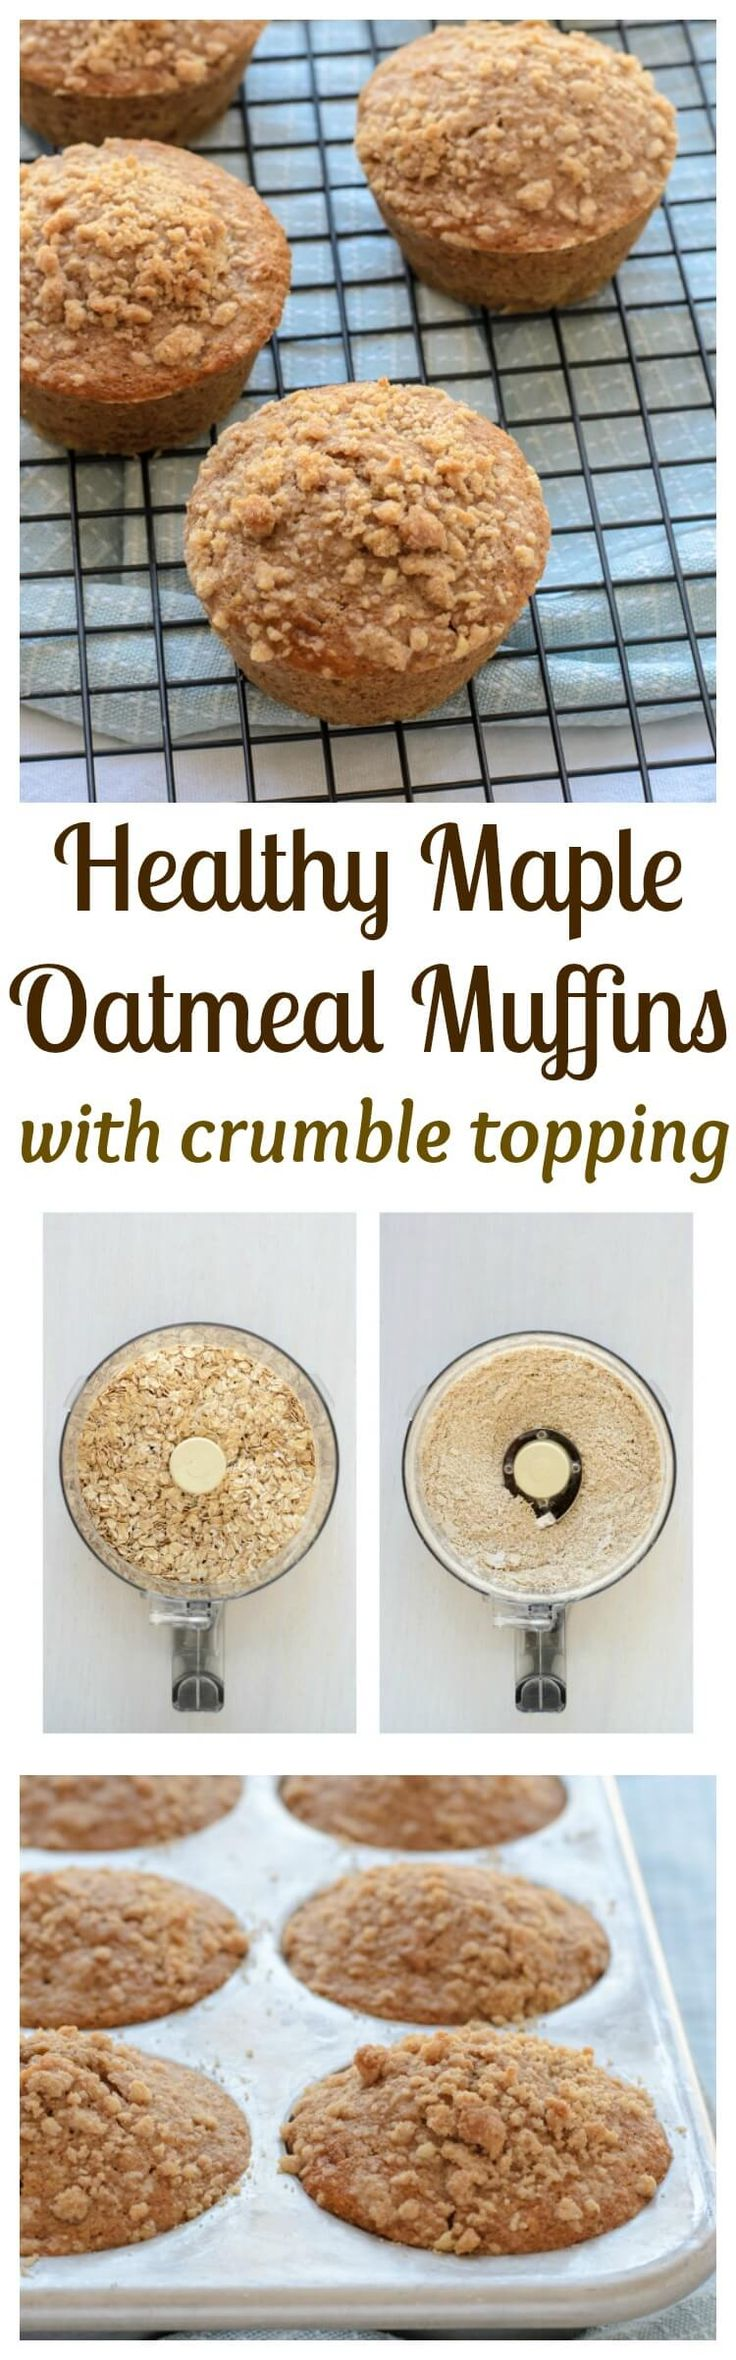 Healthy Maple Oatmeal Muffins with Cinnamon Crumb Topping